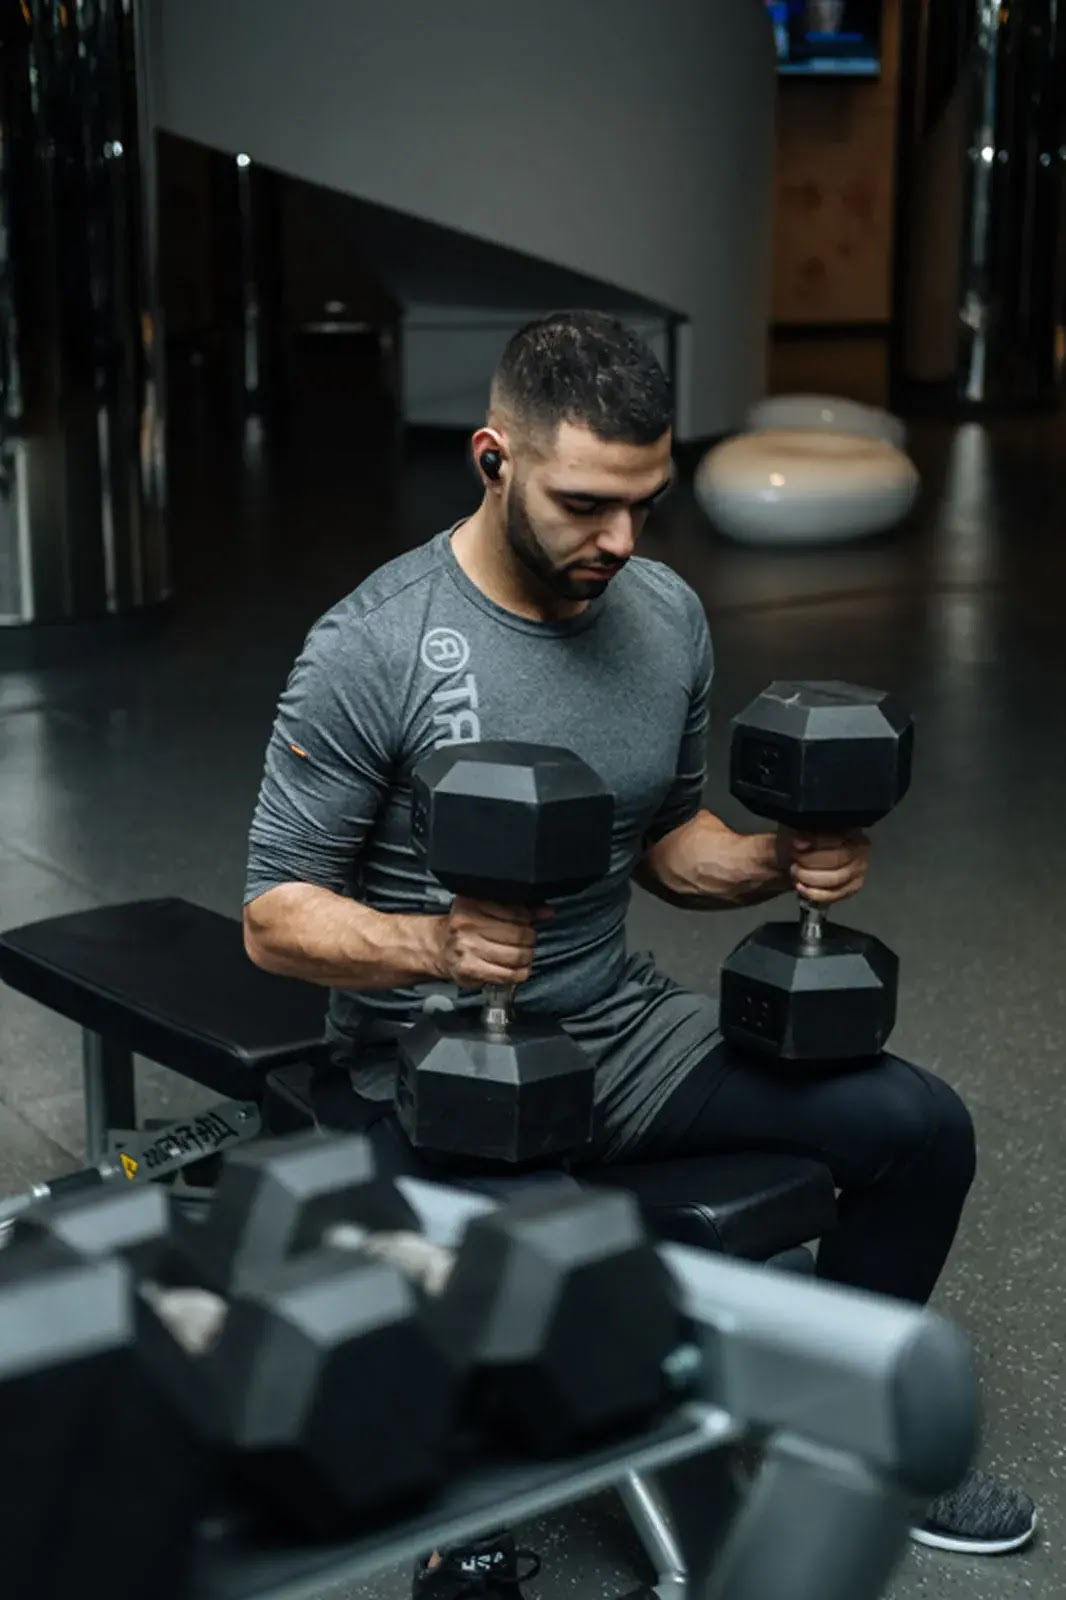 Fitness Items   The Importance of Physical Fitness to an Individual